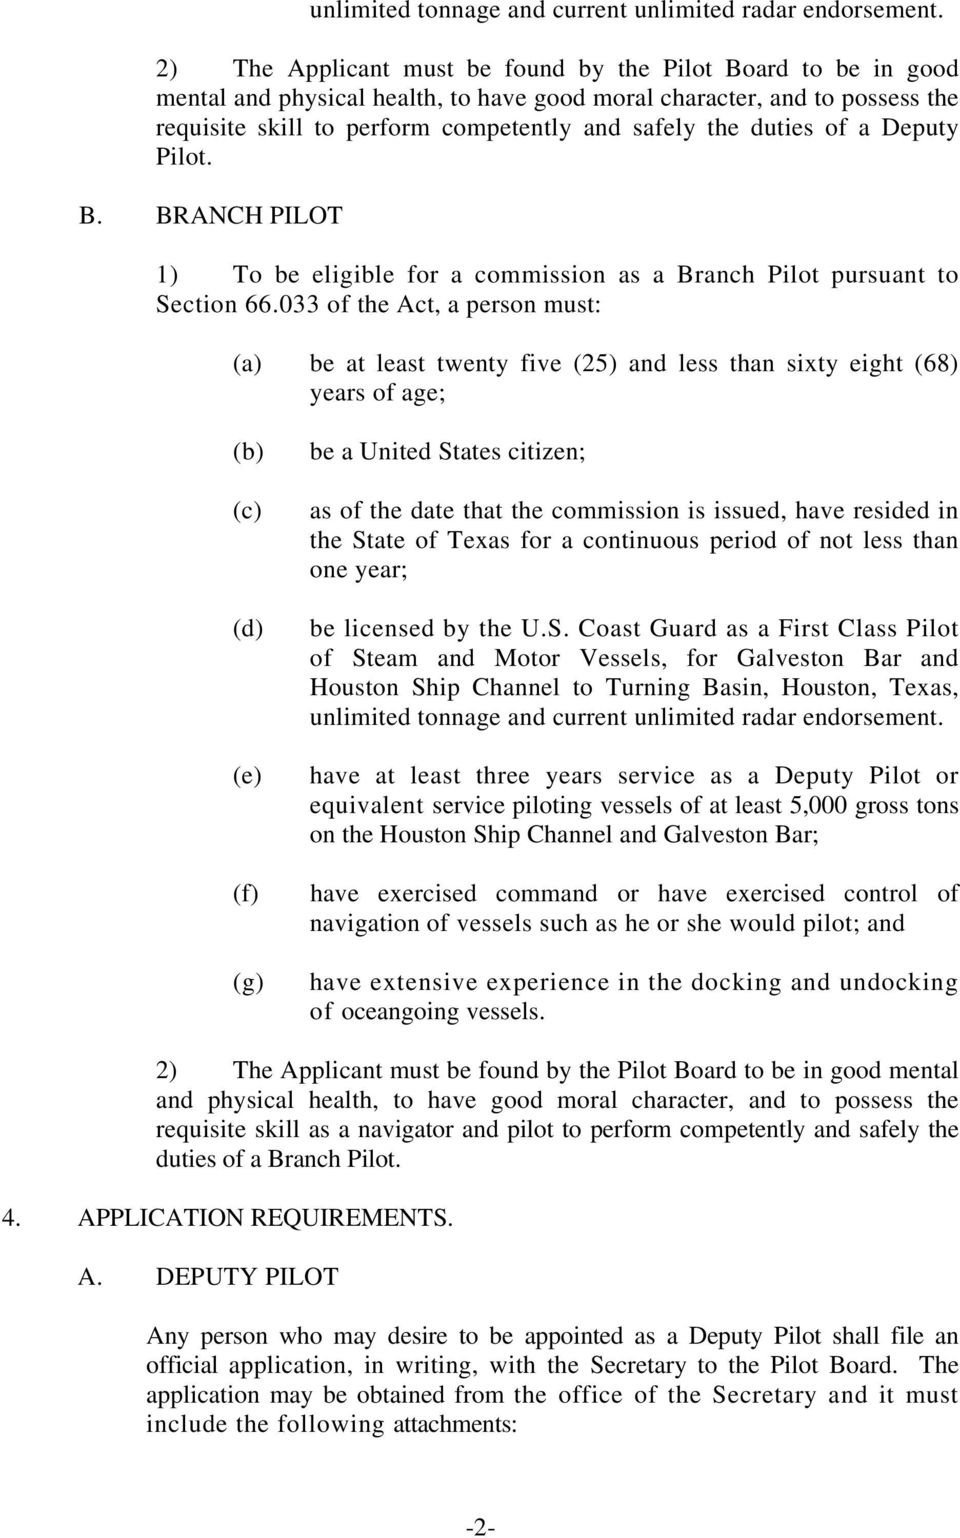 duties of a Deputy Pilot. B. BRANCH PILOT 1) To be eligible for a commission as a Branch Pilot pursuant to Section 66.